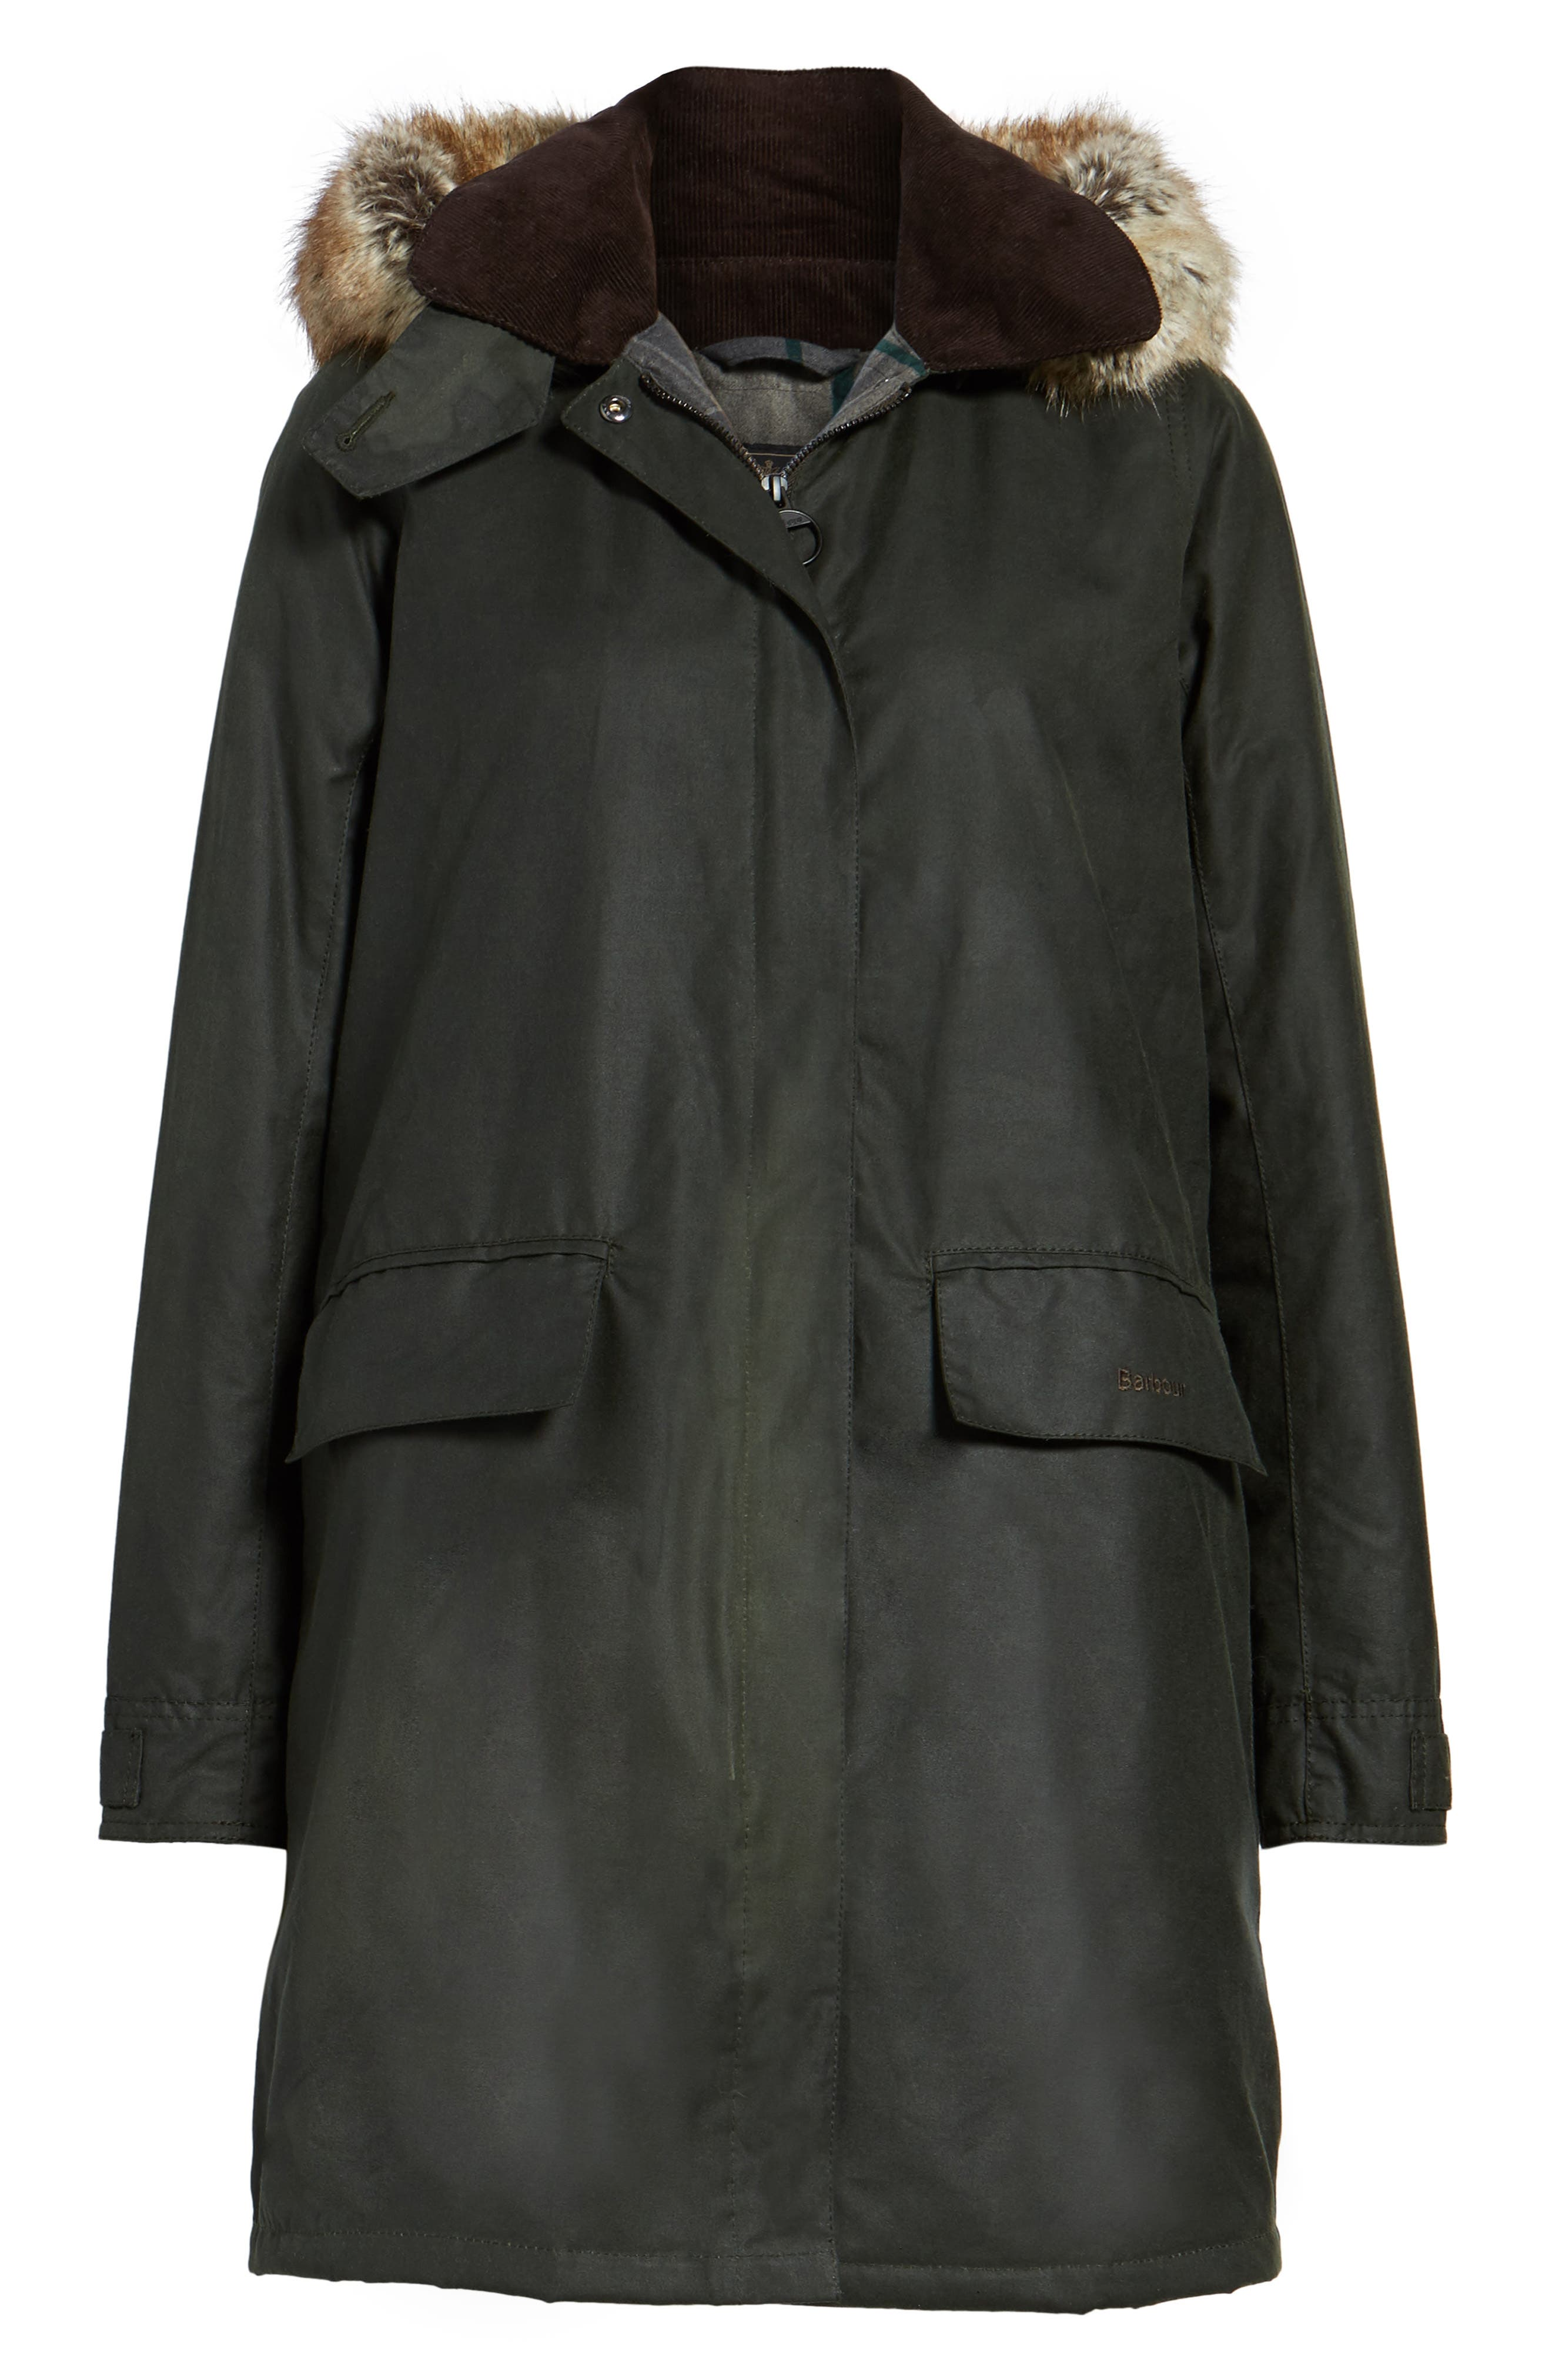 Fortrose Hooded Water Resistant Waxed Canvas Jacket with Faux Fur Trim,                             Alternate thumbnail 5, color,                             302